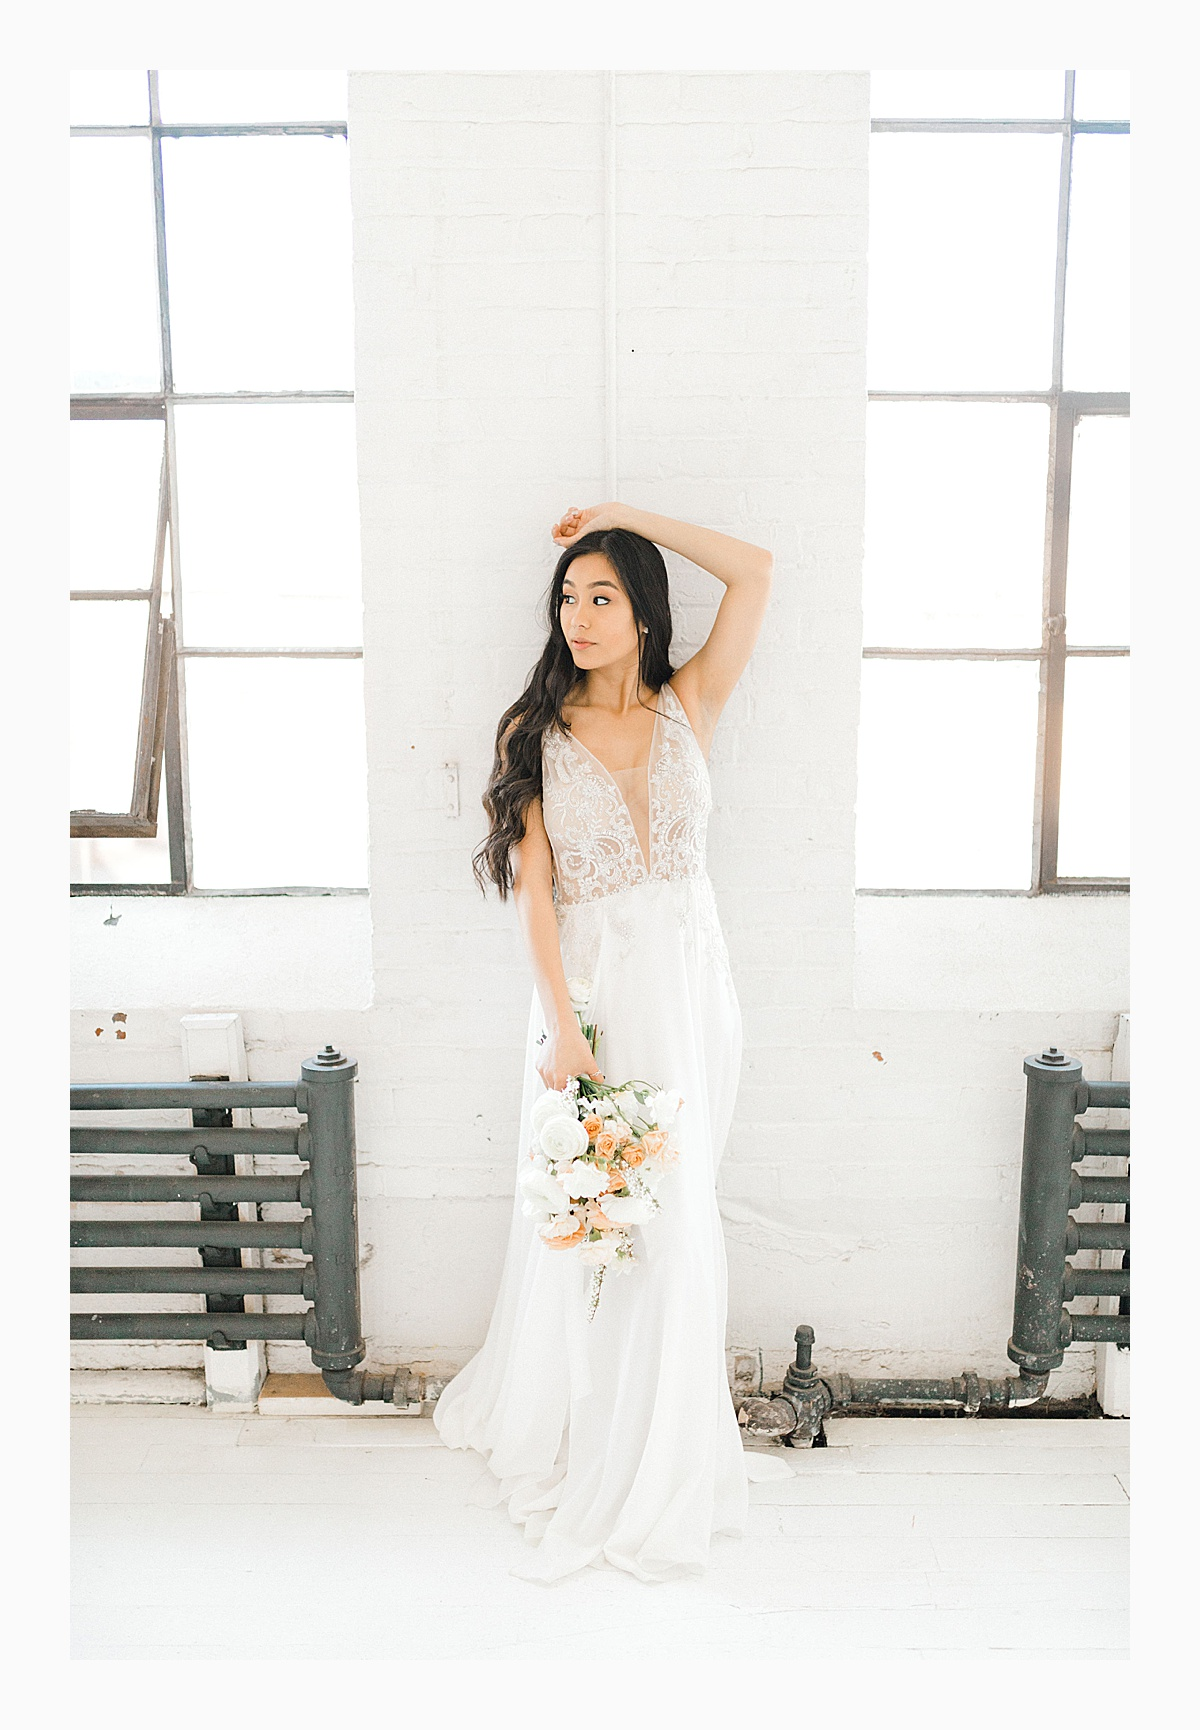 The Bemis Building in downtown Seattle is one of my favorite places to use for photo shoots!  This styled bridal shoot with touches of peach and white was dreamy.  #emmarosecompany #kindredpresets #seattlebride_0027.jpg